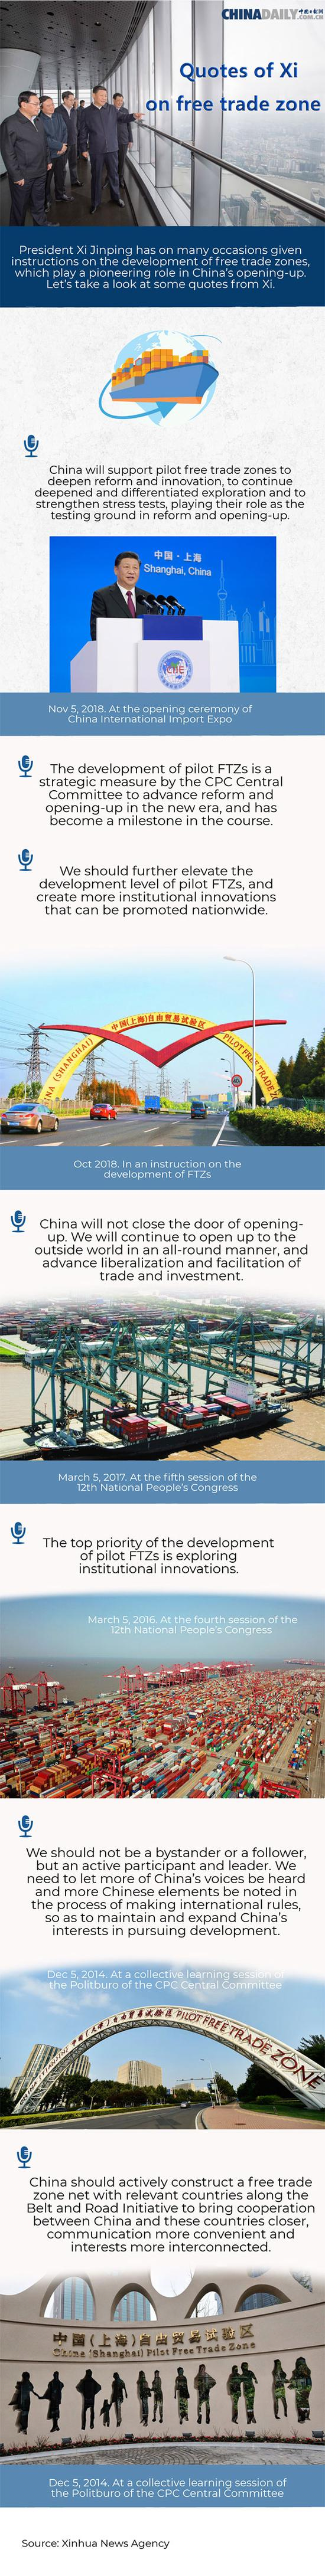 Xi's quotes on free trade zone